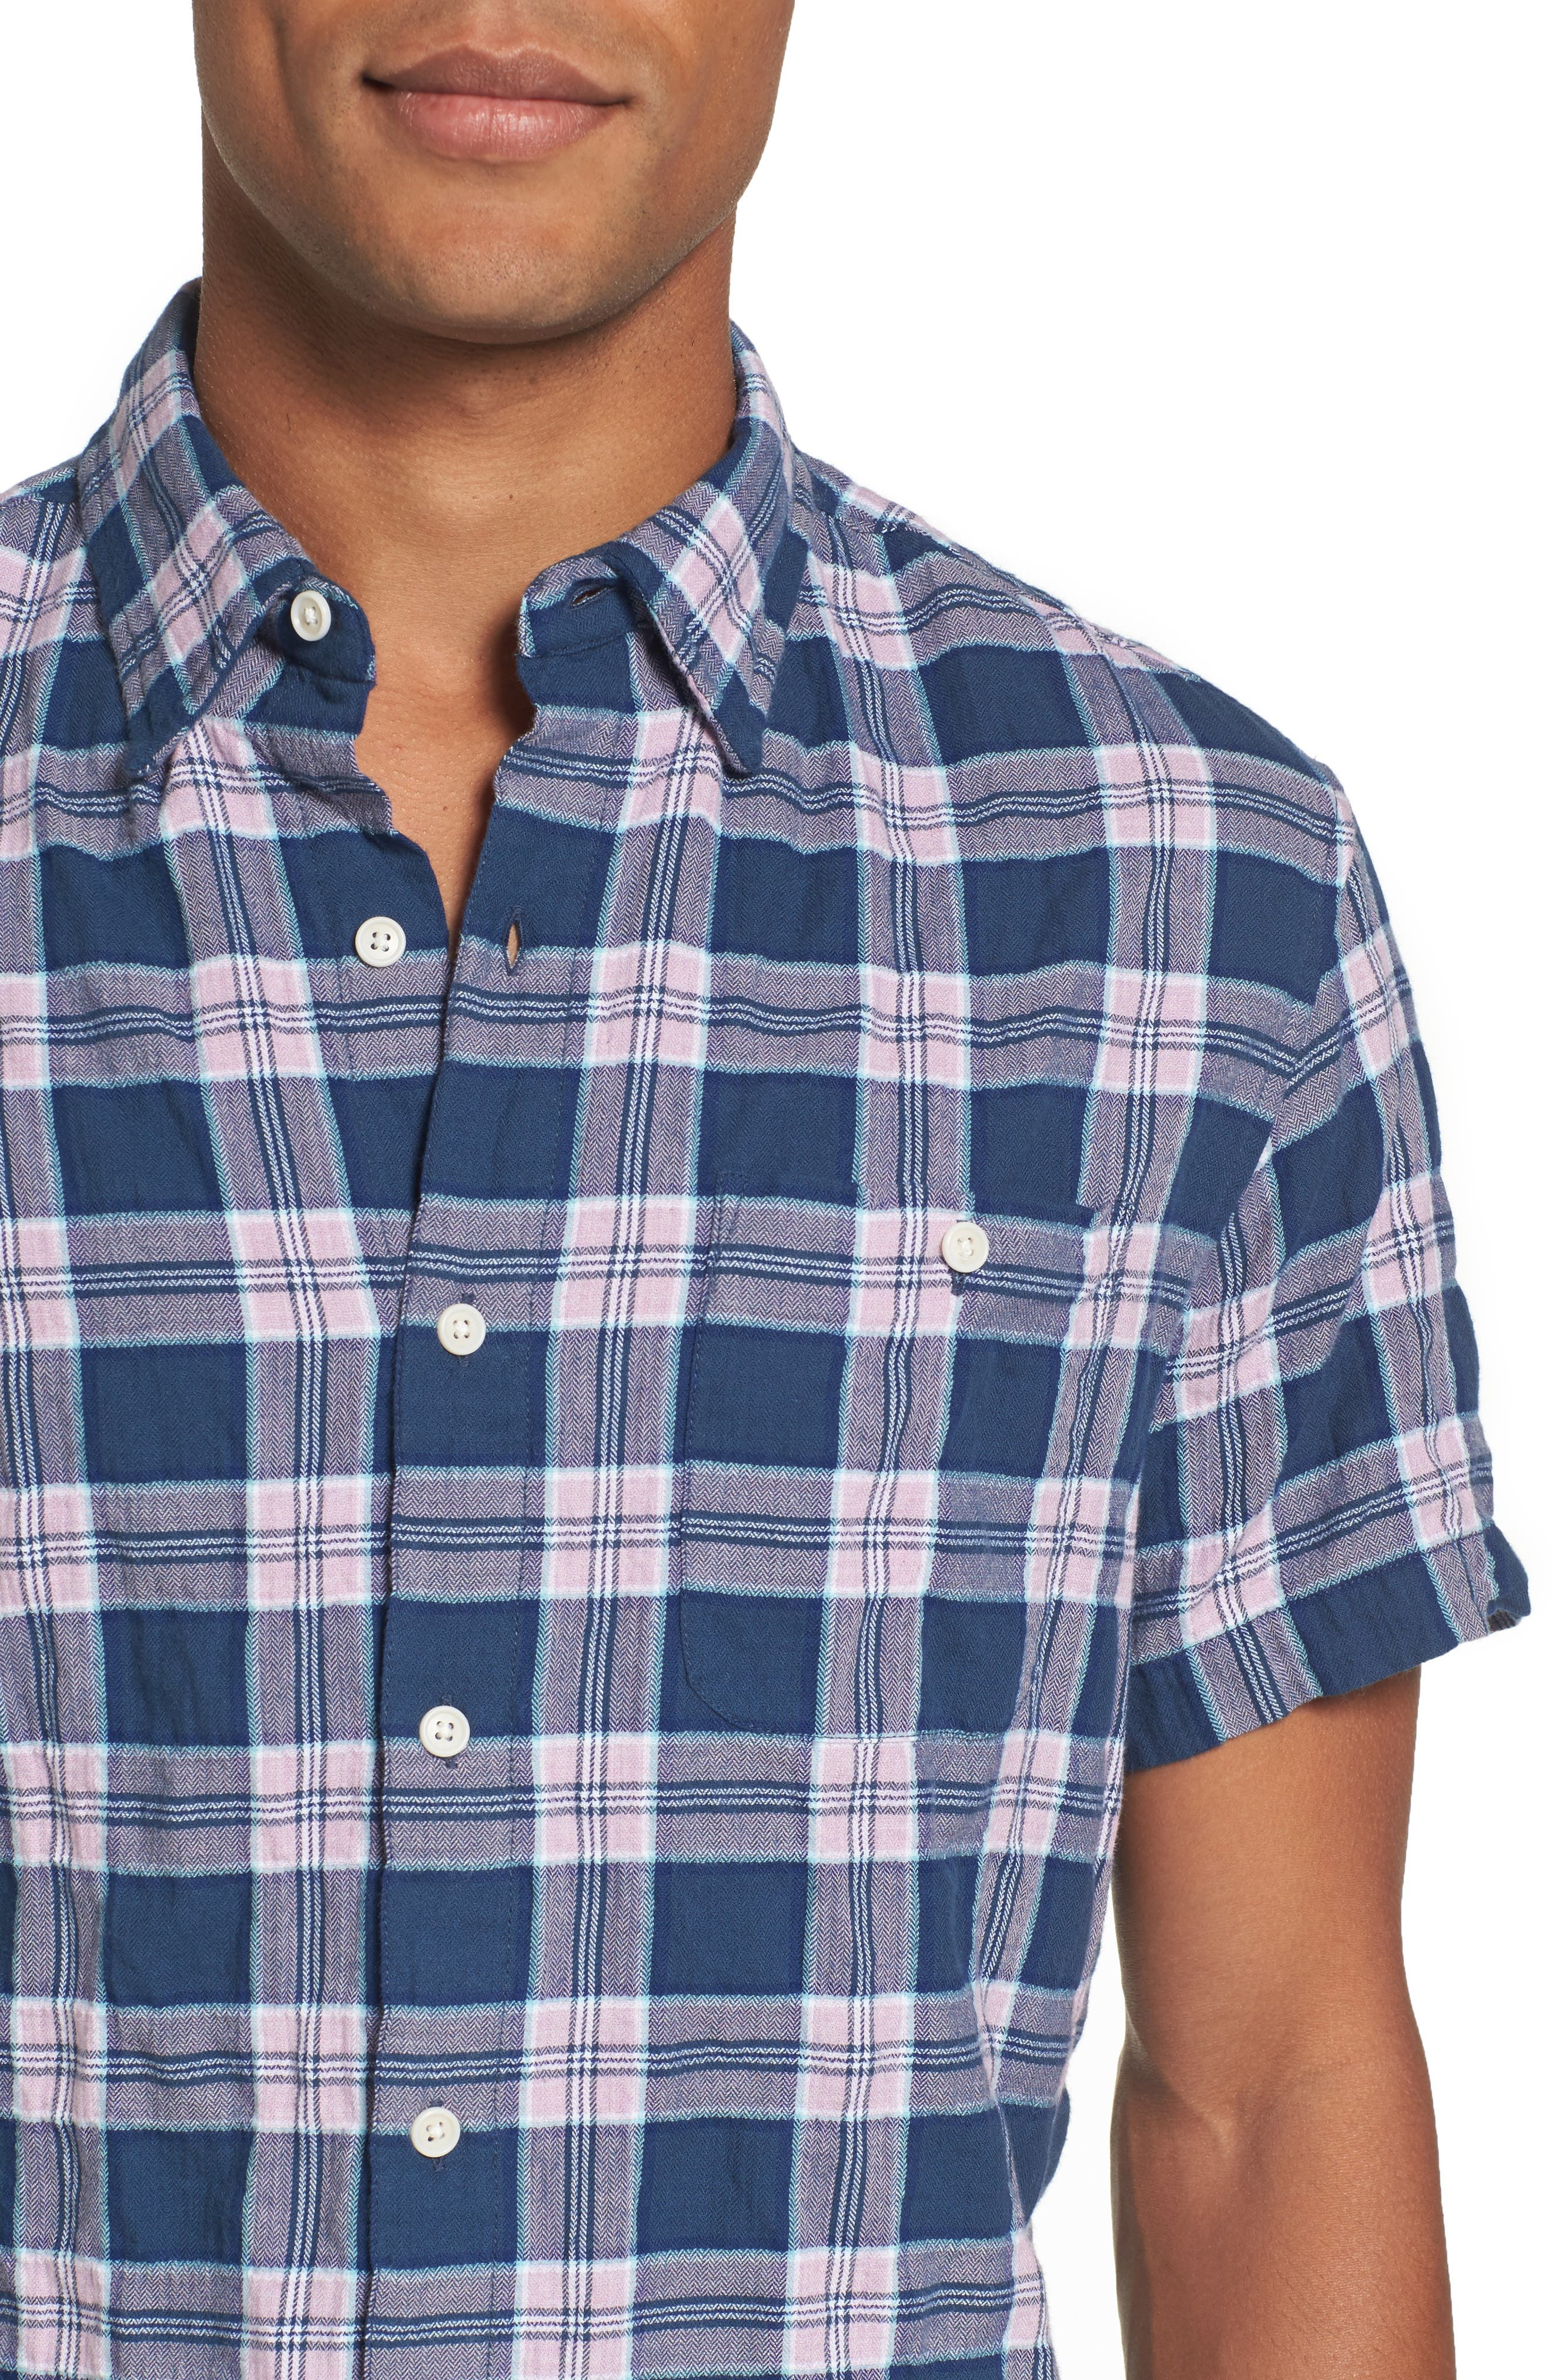 Riviera Slim Fit Plaid Woven Shirt,                             Alternate thumbnail 4, color,